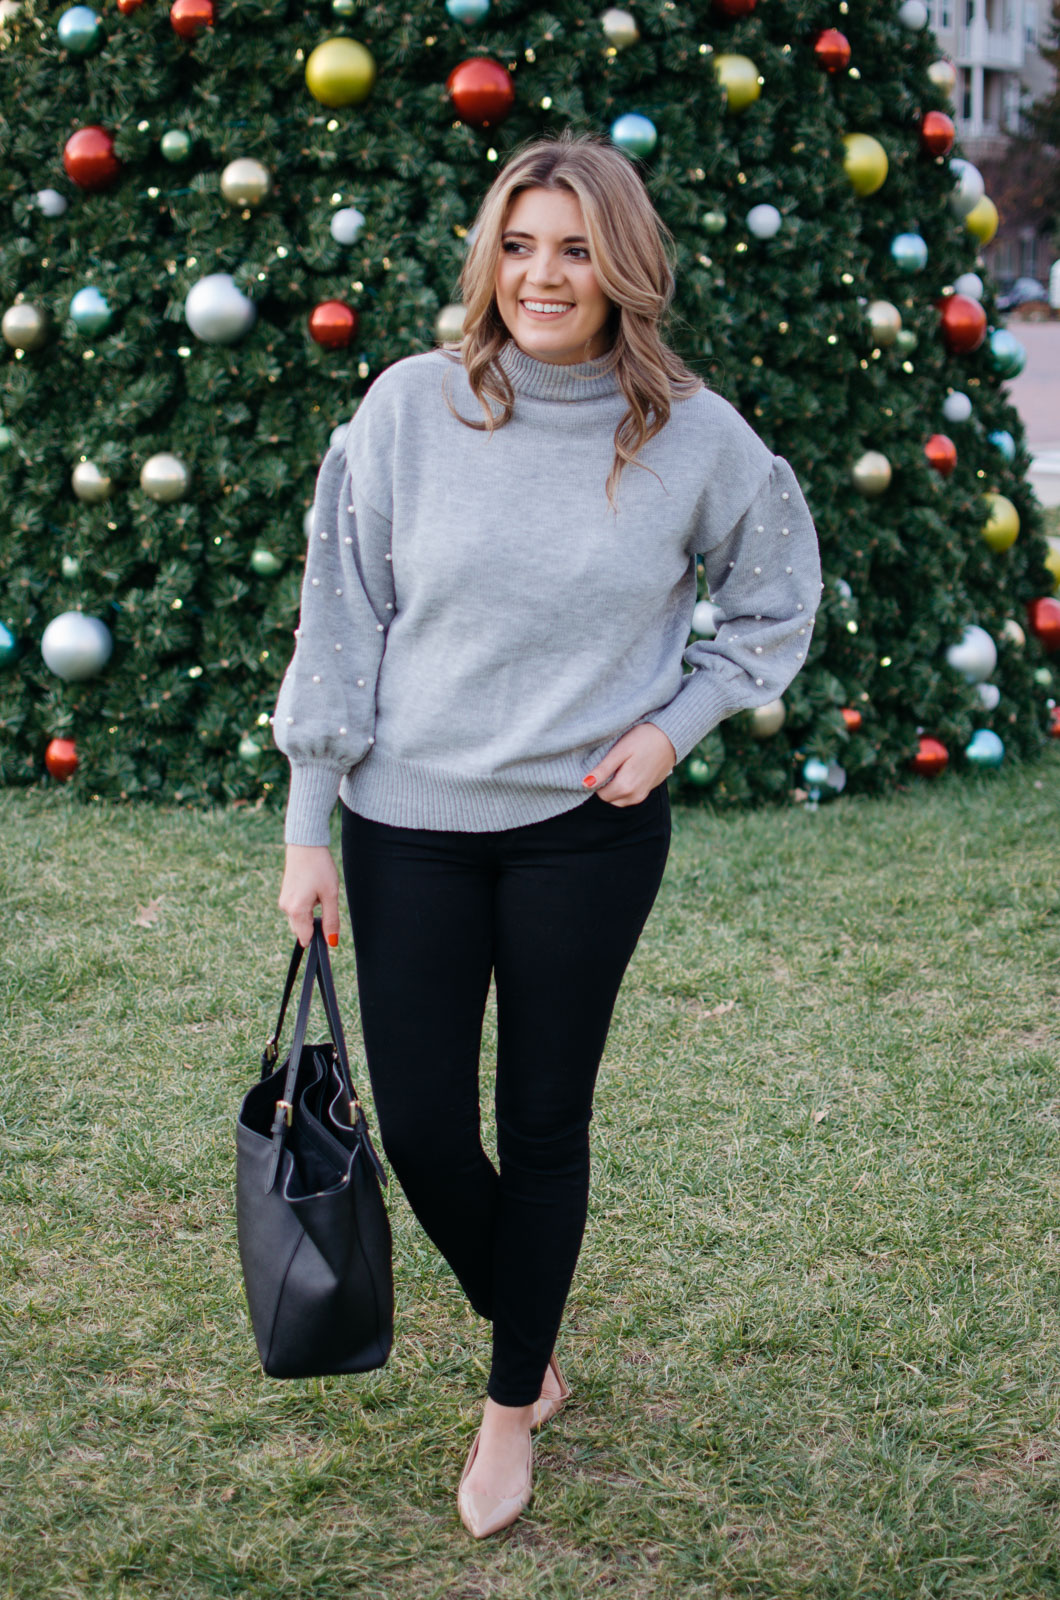 winter outfit idea - pearl sweater outfit | For more winter outfit ideas, head to bylaurenm.com!